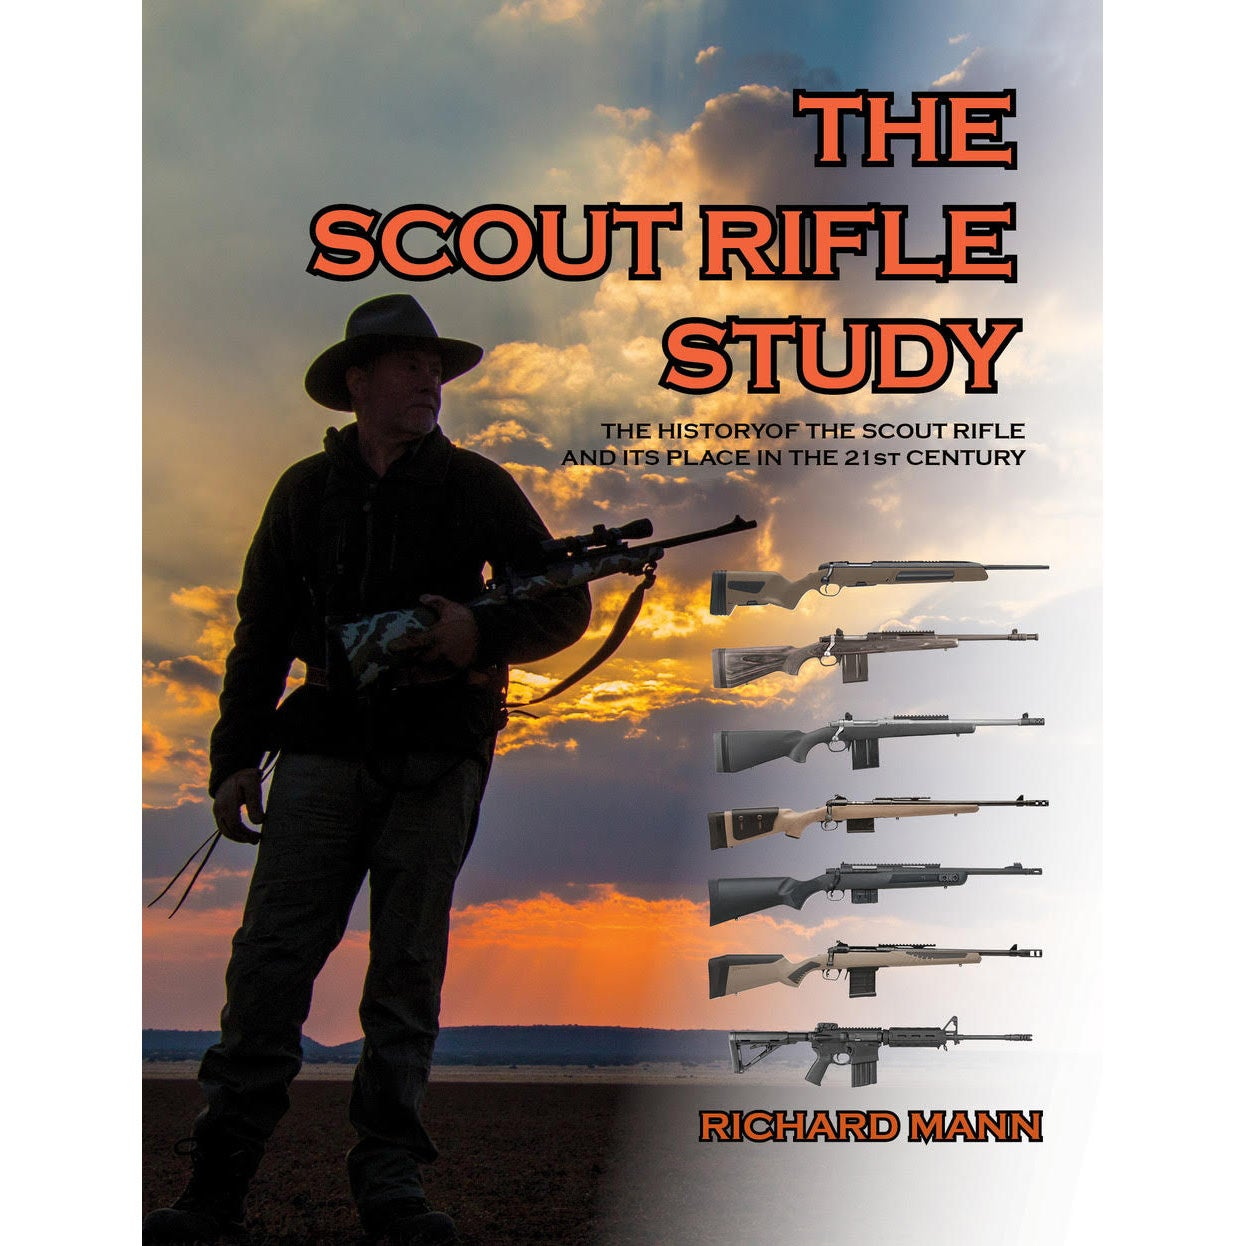 the scout rifle study by richard mann